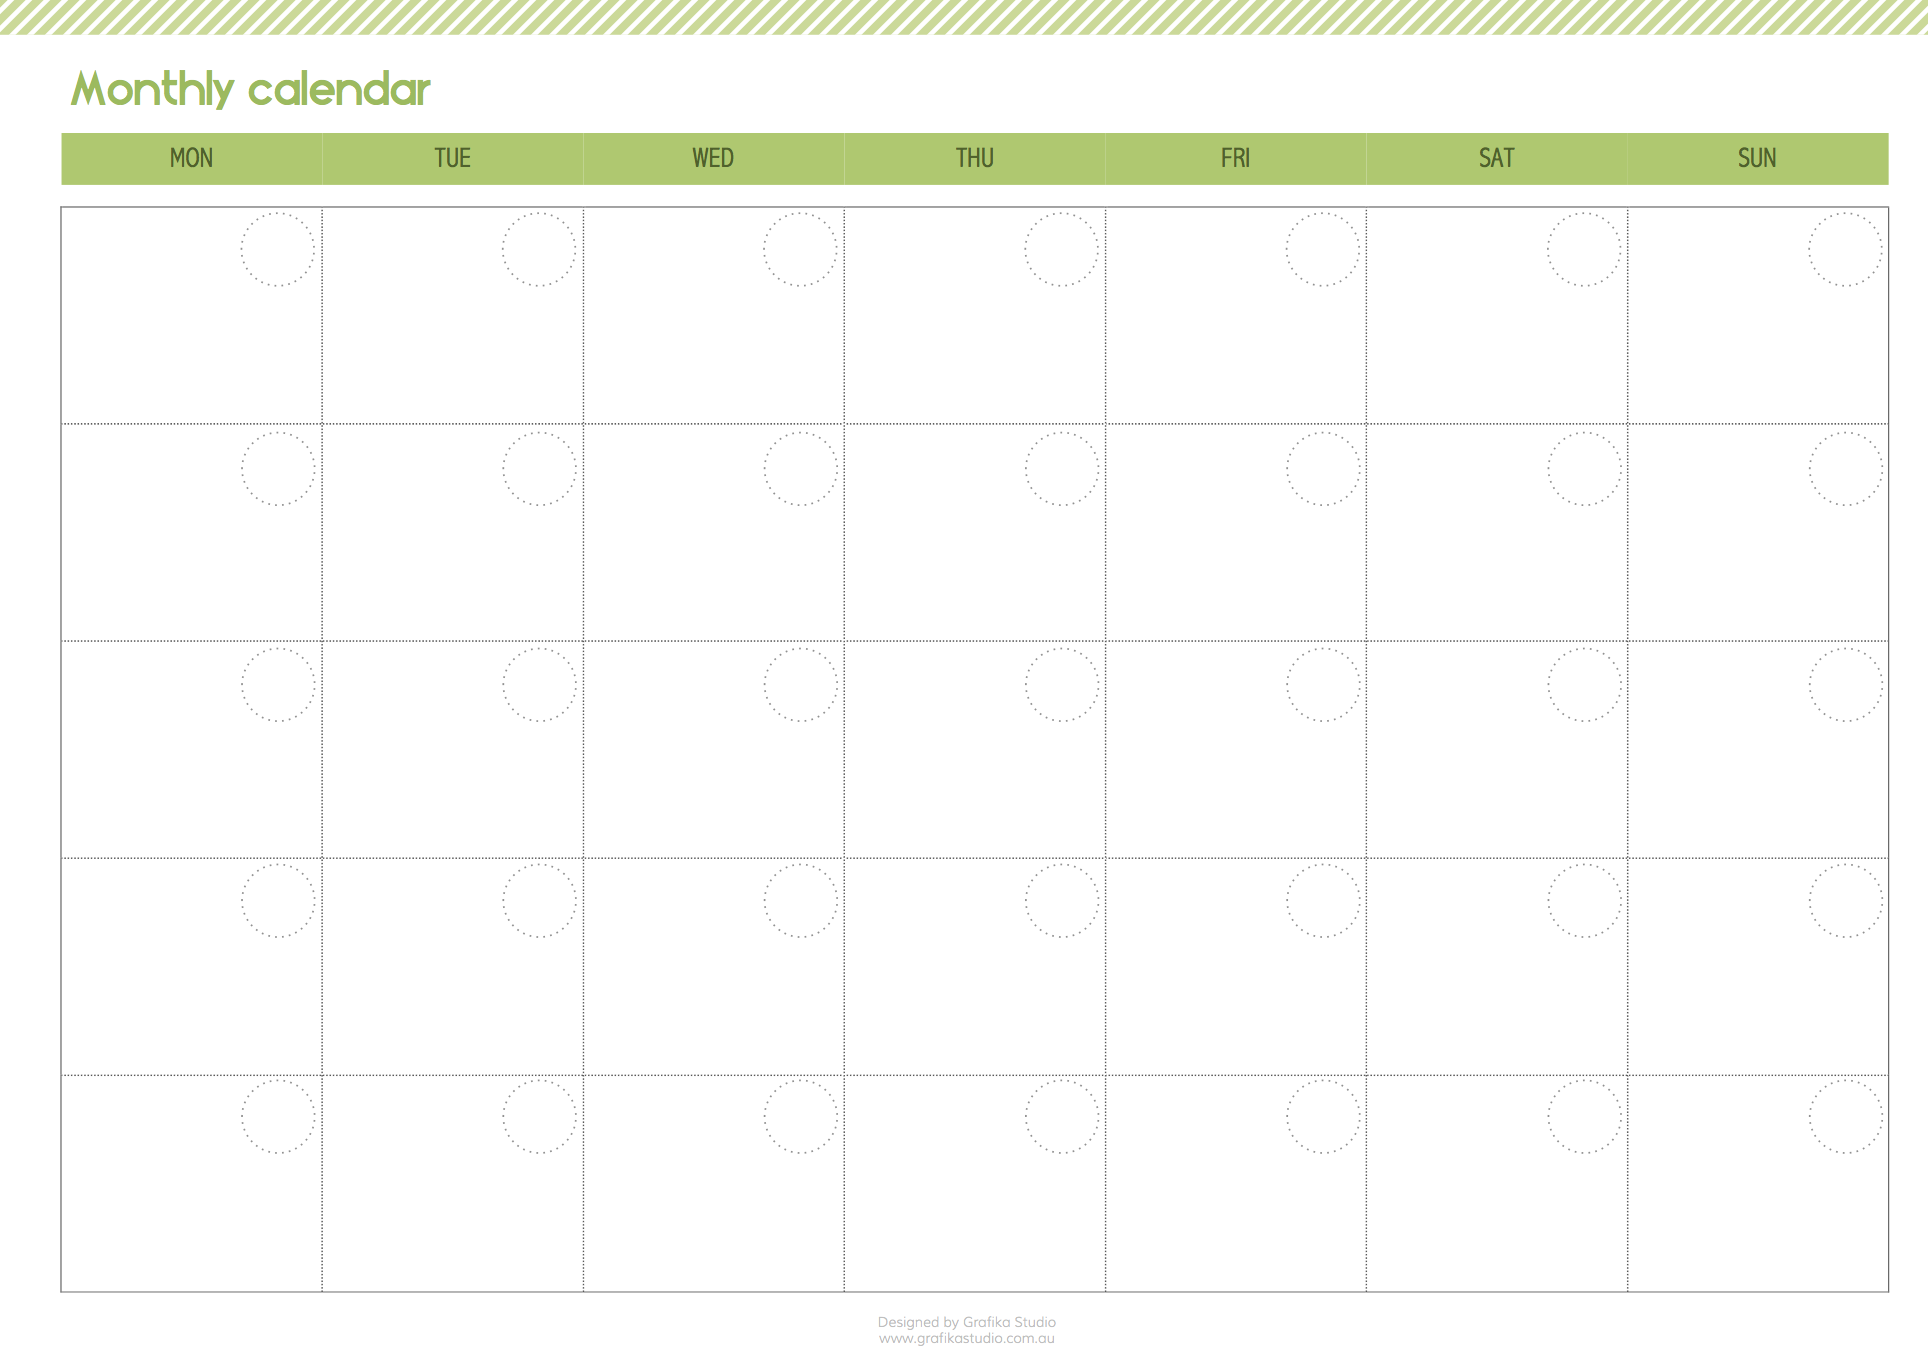 Printable monthly calendar. Click on the image to download pdf